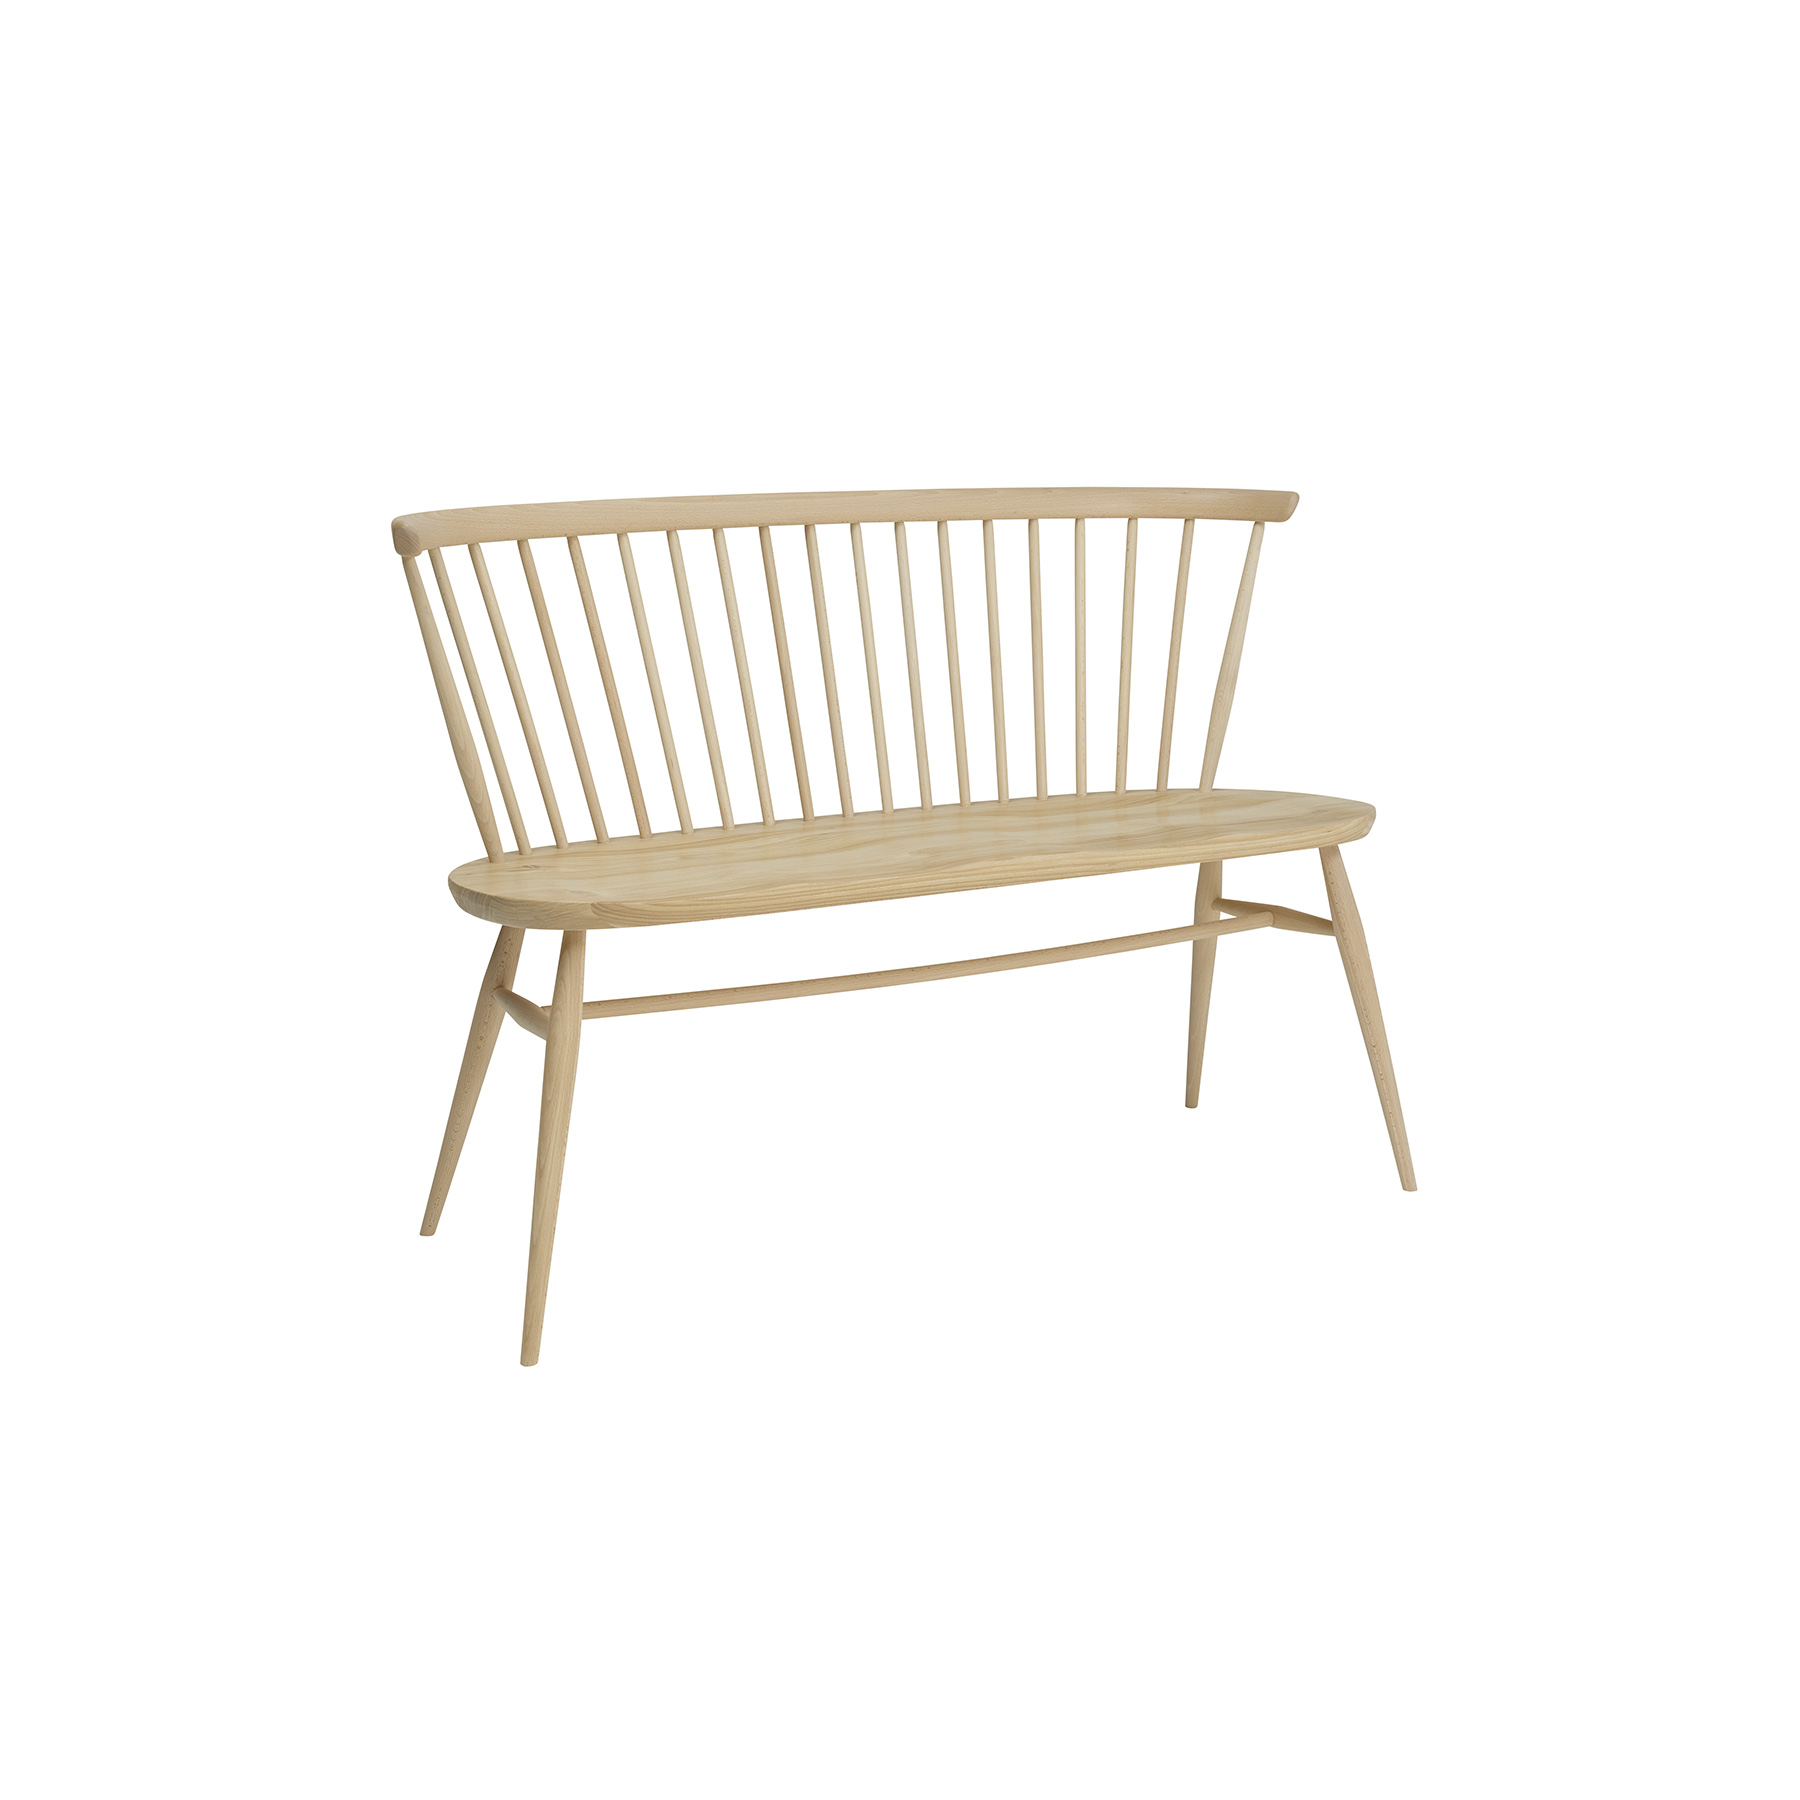 Originals Love Seat - The Ercol Originals are pieces of timeless and classic design that never date or show their age. It is furniture that is as relevant and as functional now as it was when it was created in the 1950s and 1960s. This furniture was designed by Ercol's founder, Lucian Ercolani, who drew for his inspiration on the time-proven local design and craft in the Chiltern Hills around where he lived and built his first factory in 1920 in High Wycombe. Using the strength of beech and the beauty of elm he carried this definition on into a huge variety of dining, kitchen, and school chairs and then extended the idiom into the low easy chair range epitomised by the 206 armchair and the studio couch. The beauty of the colour and the grain of the elm took Lucian on to use elm for the tables and cabinets of the Originals and the following Windsor range. As a progression of the Windsor chair, this love seat offers a large, outward shaped ash seat, moulded for comfort. The bent solid ash chair bow is an attractive and unique shape, reminiscent of its Windsor heritage. Turned lists that structure the back of this seat for two and tapered legs give this piece a distinctive Ercol feel. Coupled with the plank table or used as a standalone piece, this unique love seat will be the focus of your living space. This love seat will be finished in your choice of a variety lacquer finishes or in your choice of a selection of painted colour finishes, which protects the timber as well as fitting in with your style and decor. Otherwise, opt for a graded colour finish to create a contemporary edge to your home. To celebrate our 100th anniversary the love seat, designed by Ercol's founder, Lucian Ercolani, will feature an exclusive centenary logo during our anniversary year 2020.  | Matter of Stuff